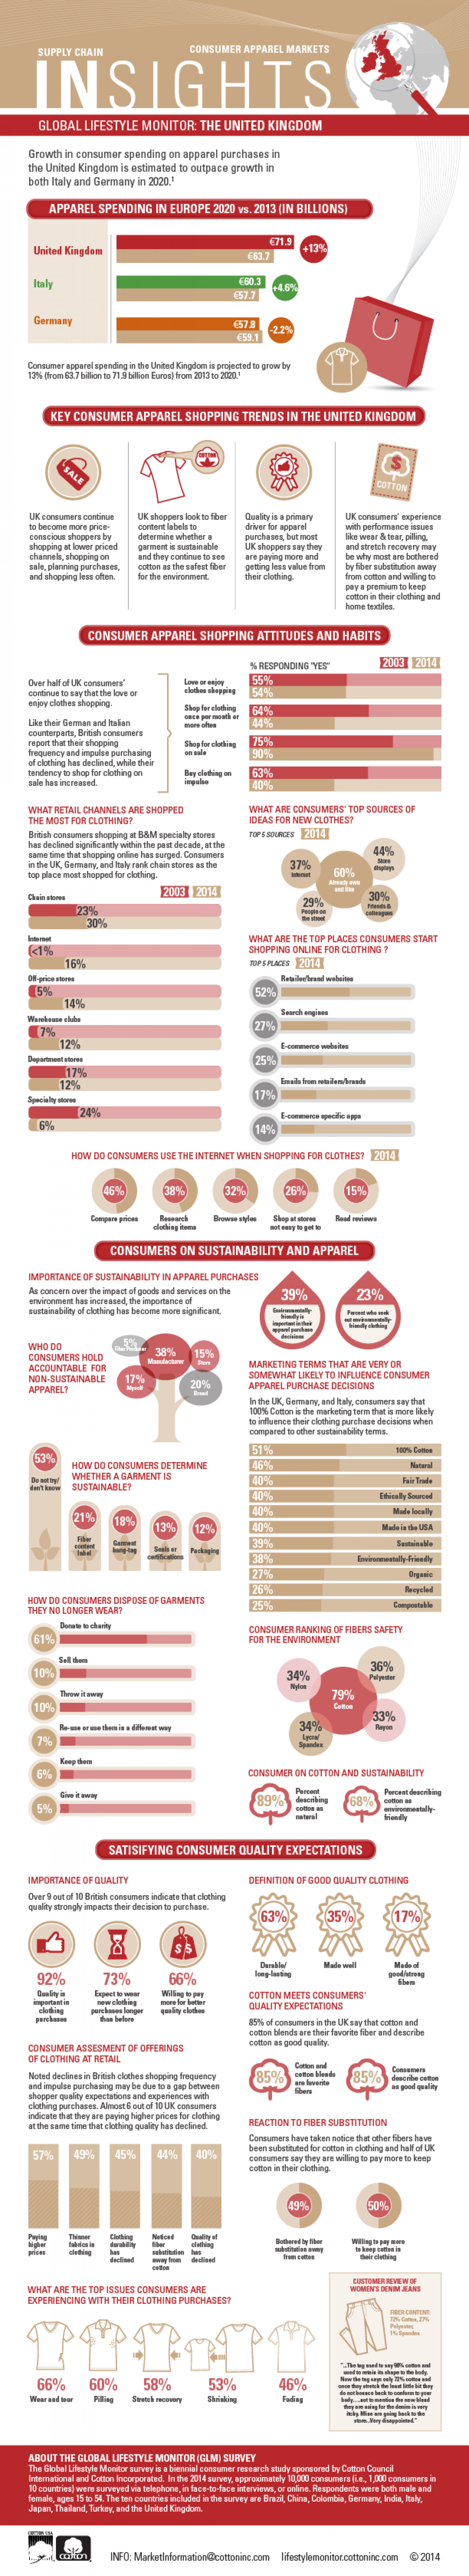 Apparel Spending in the UK Infographic